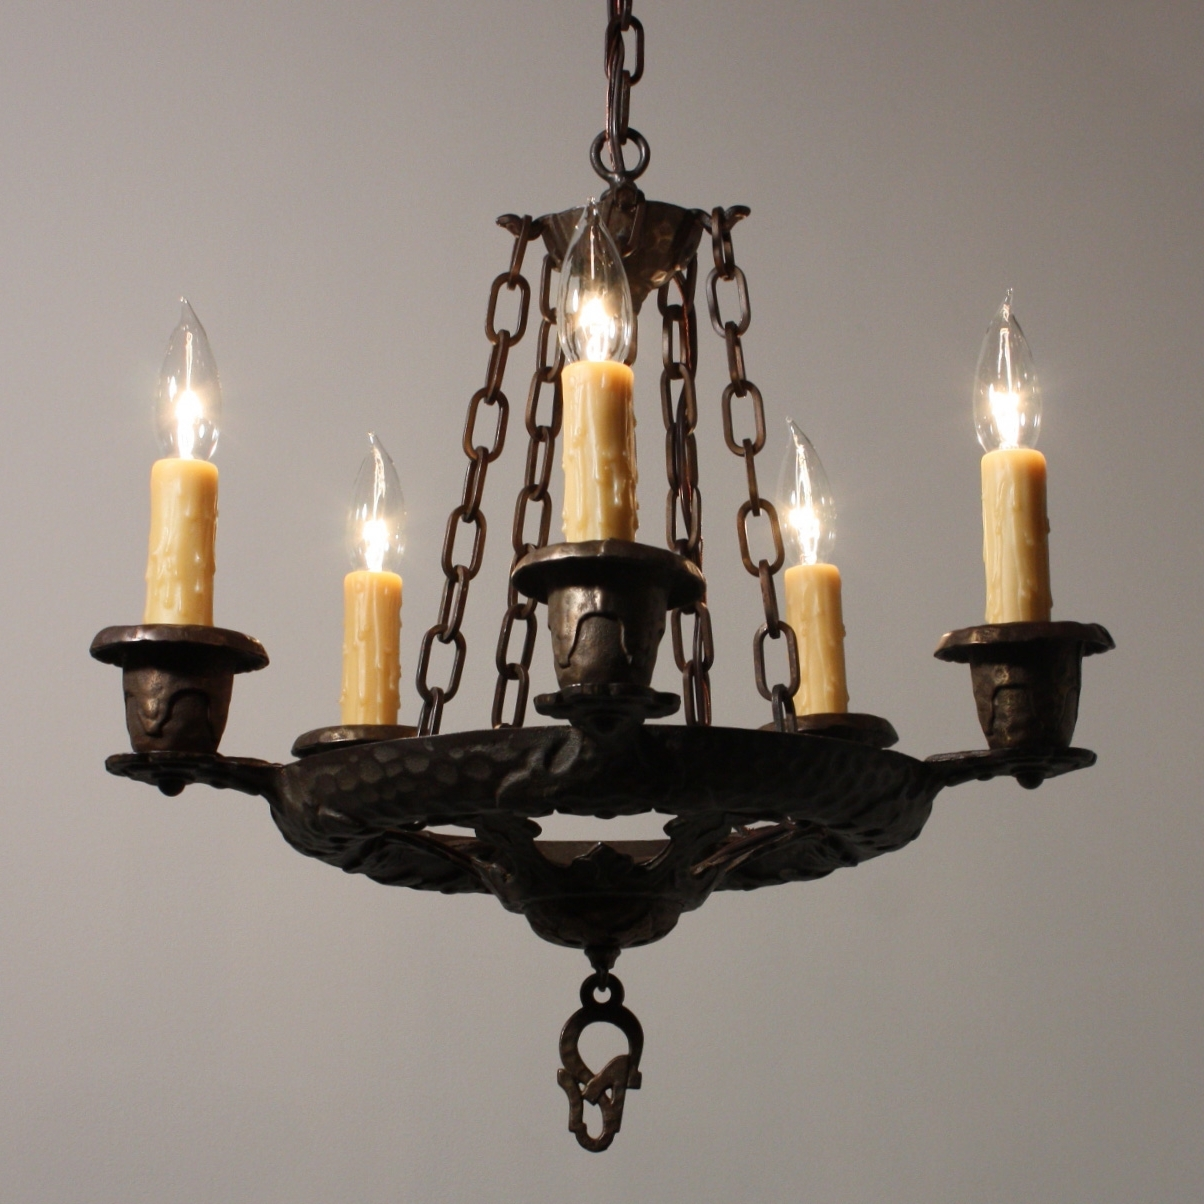 Recent Cast Iron Antique Chandelier With Handsome Antique Five Light Tudor Chandelier, Cast Iron, Nc1650 Rw (View 2 of 20)